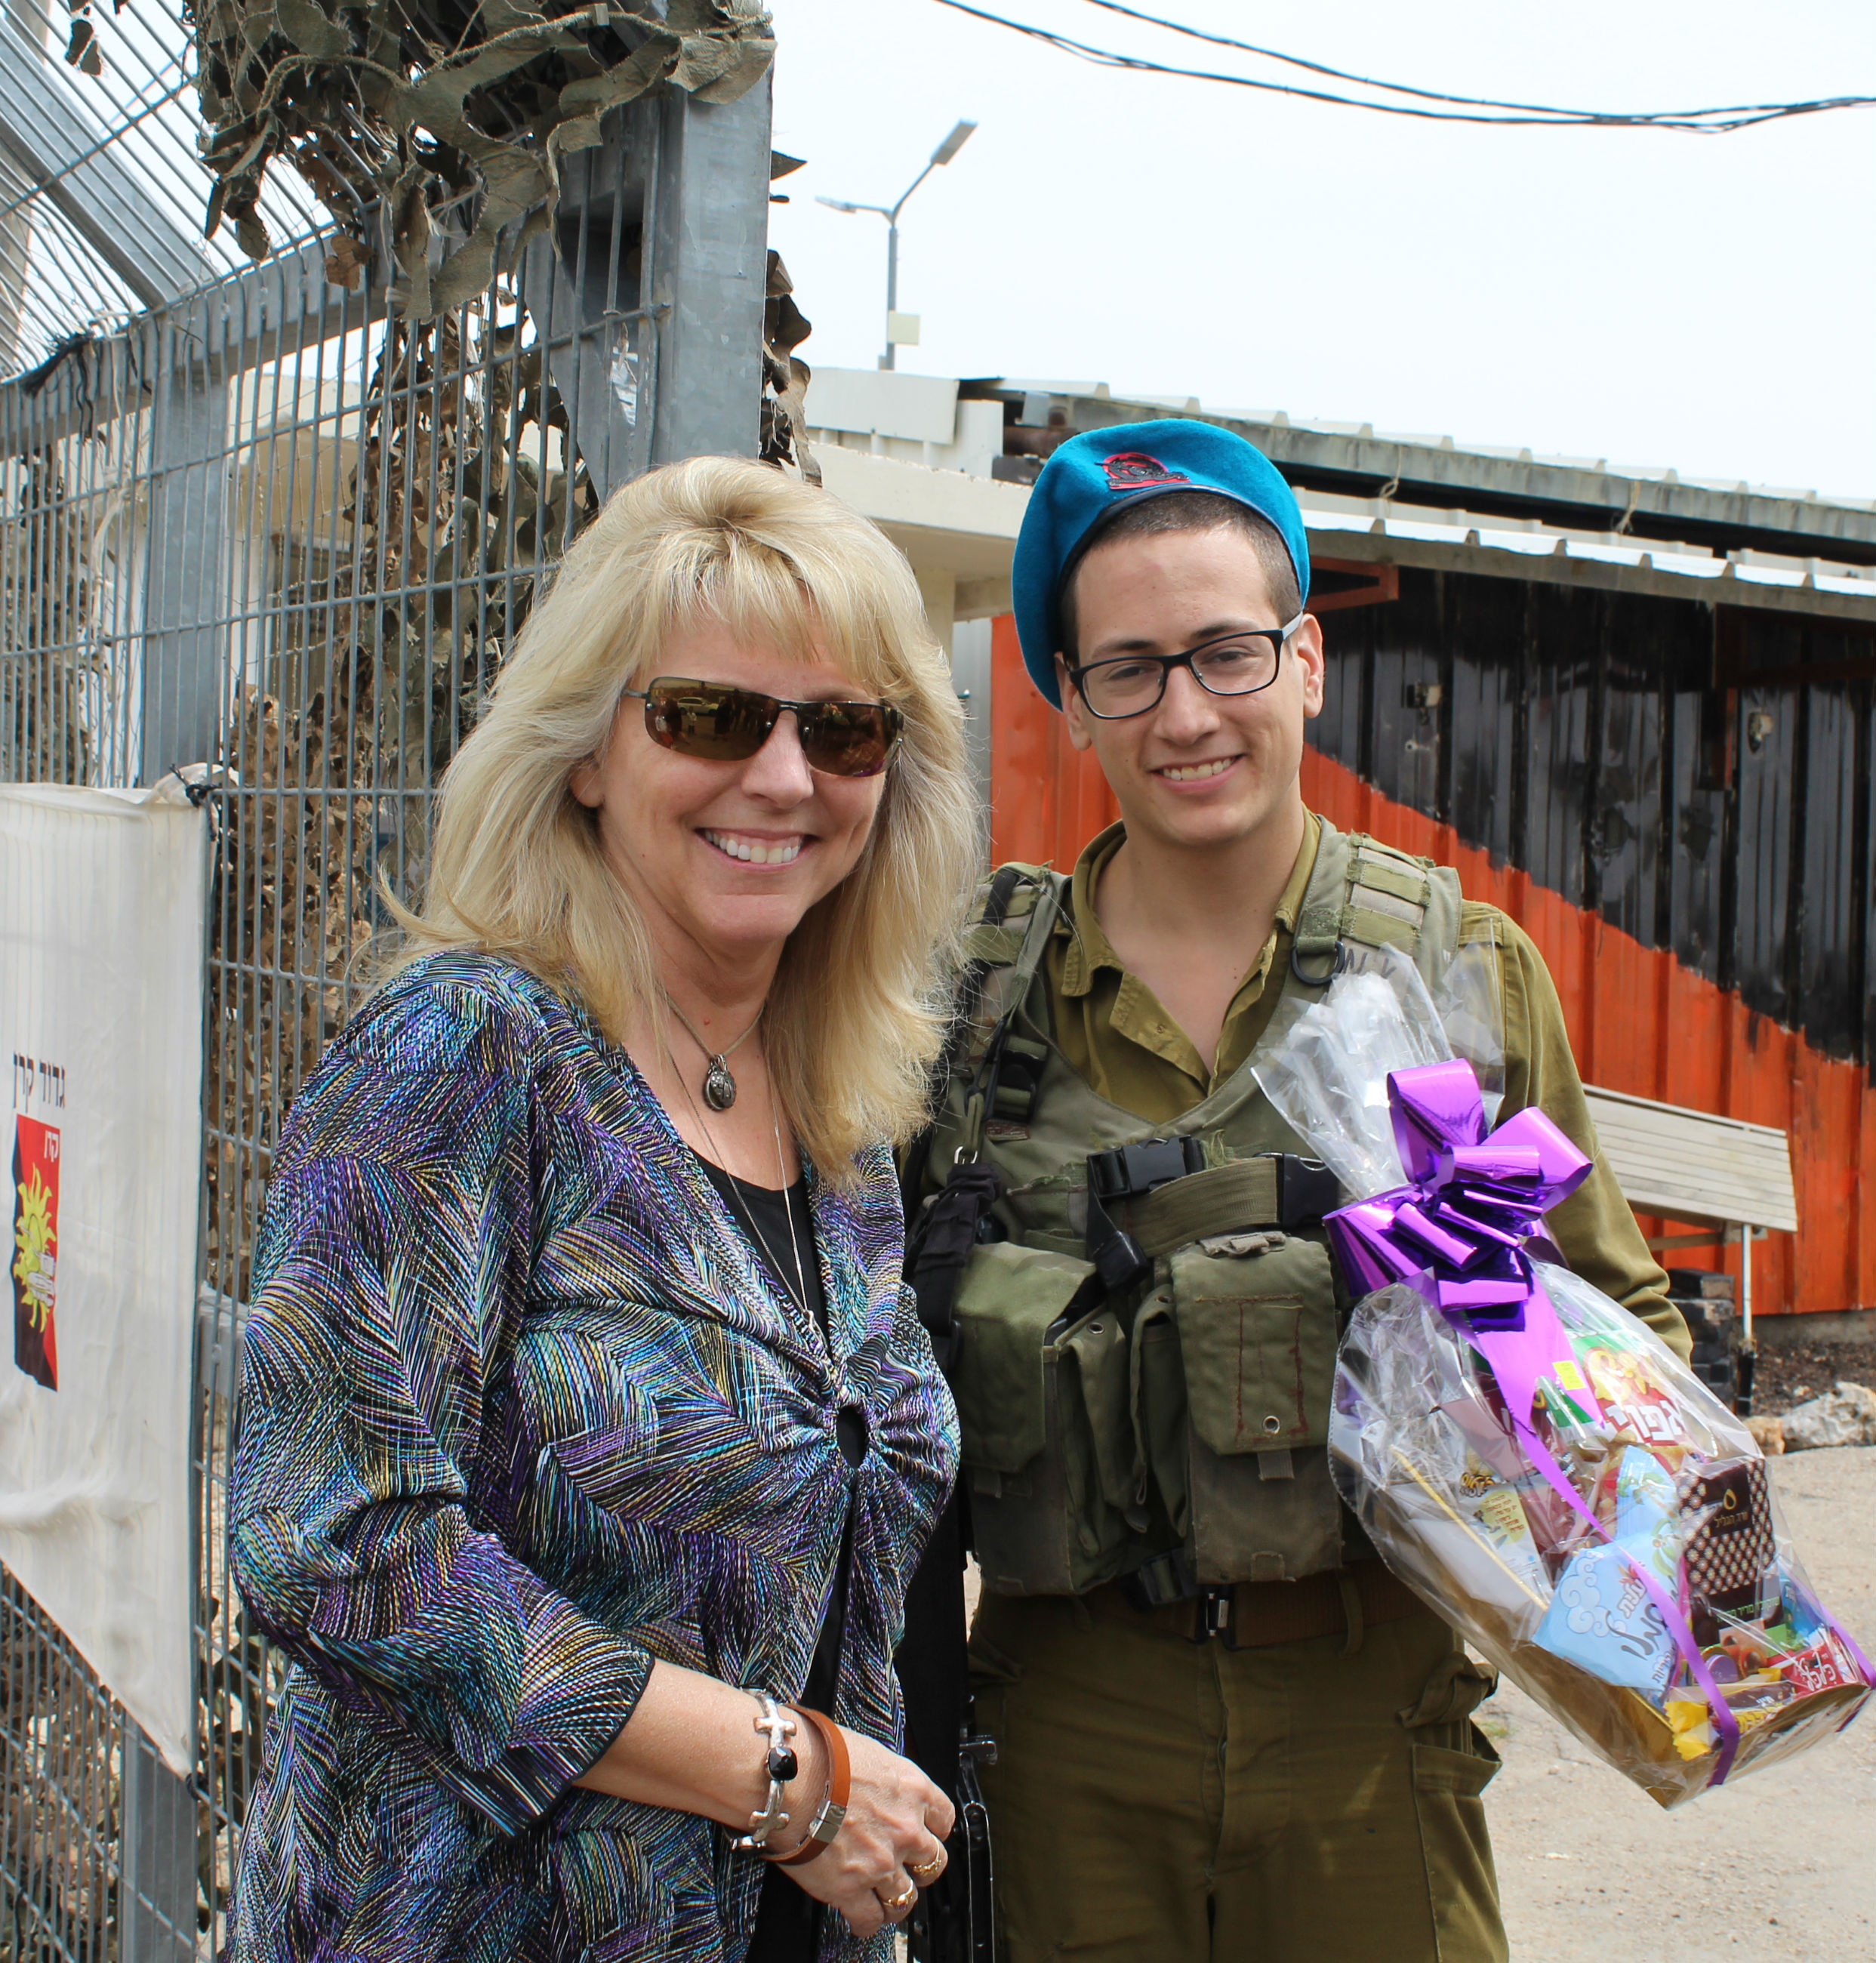 purim idf base 2